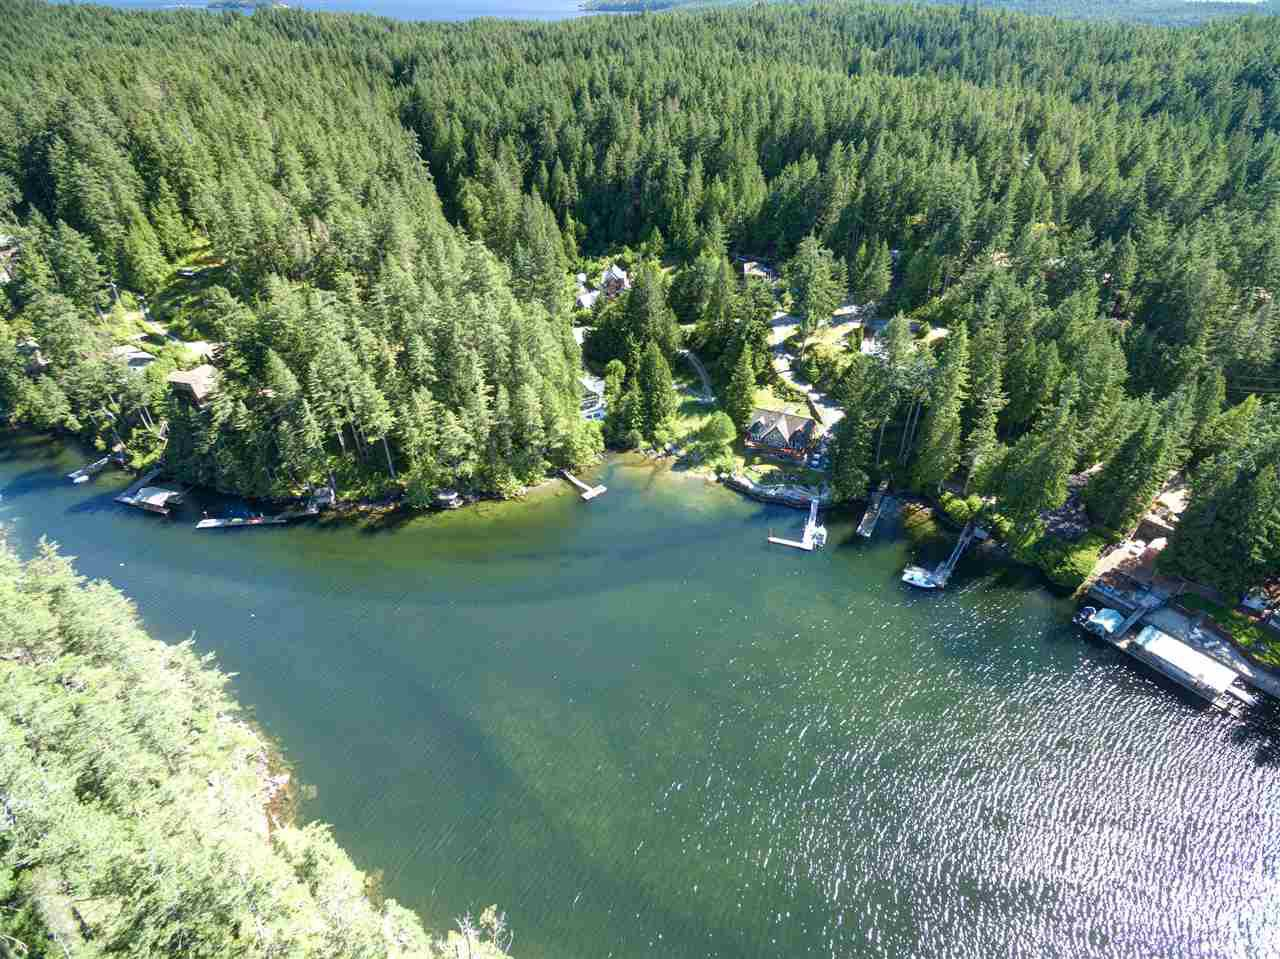 Photo 9: Photos: 9818 WESCAN Road in Halfmoon Bay: Halfmn Bay Secret Cv Redroofs Land for sale (Sunshine Coast)  : MLS®# R2375125